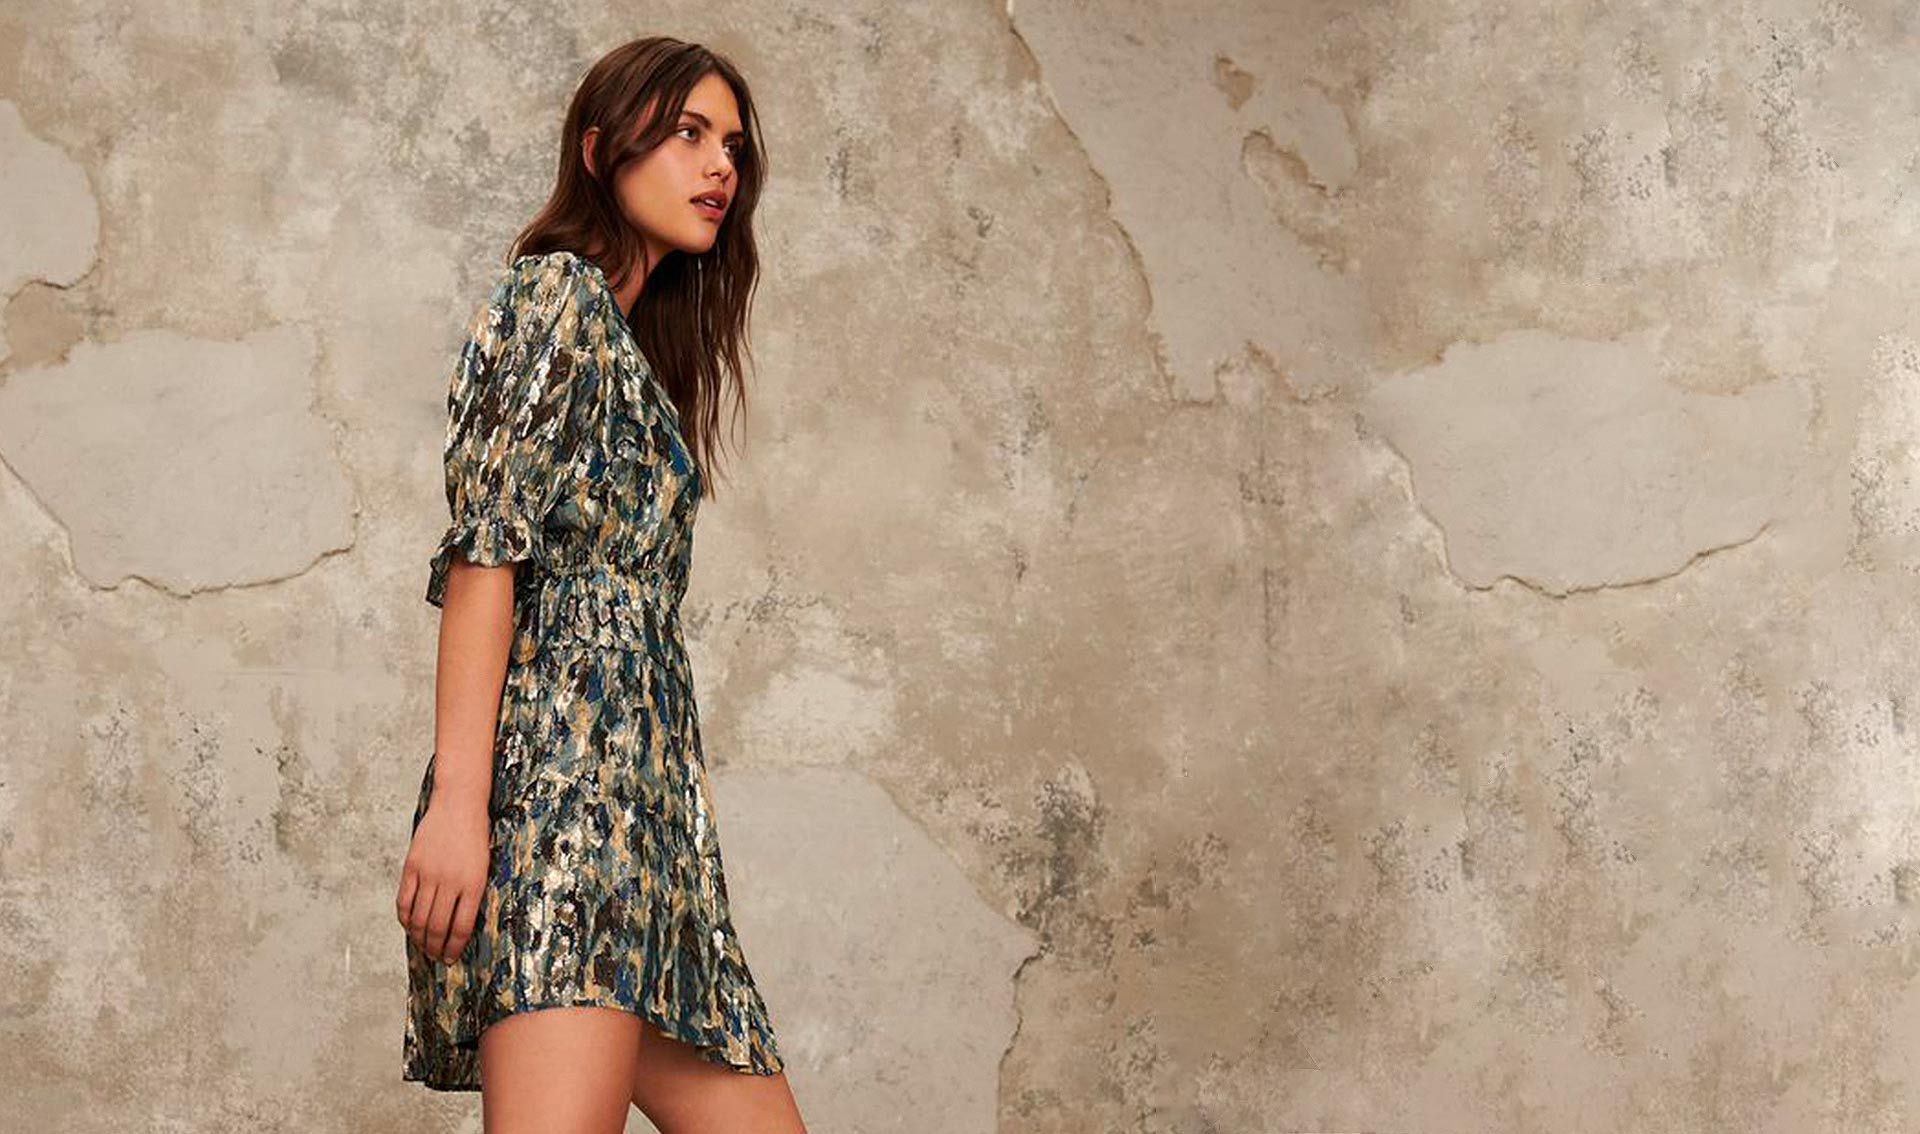 brown haired woman wearing a short blue printed dress with lurex